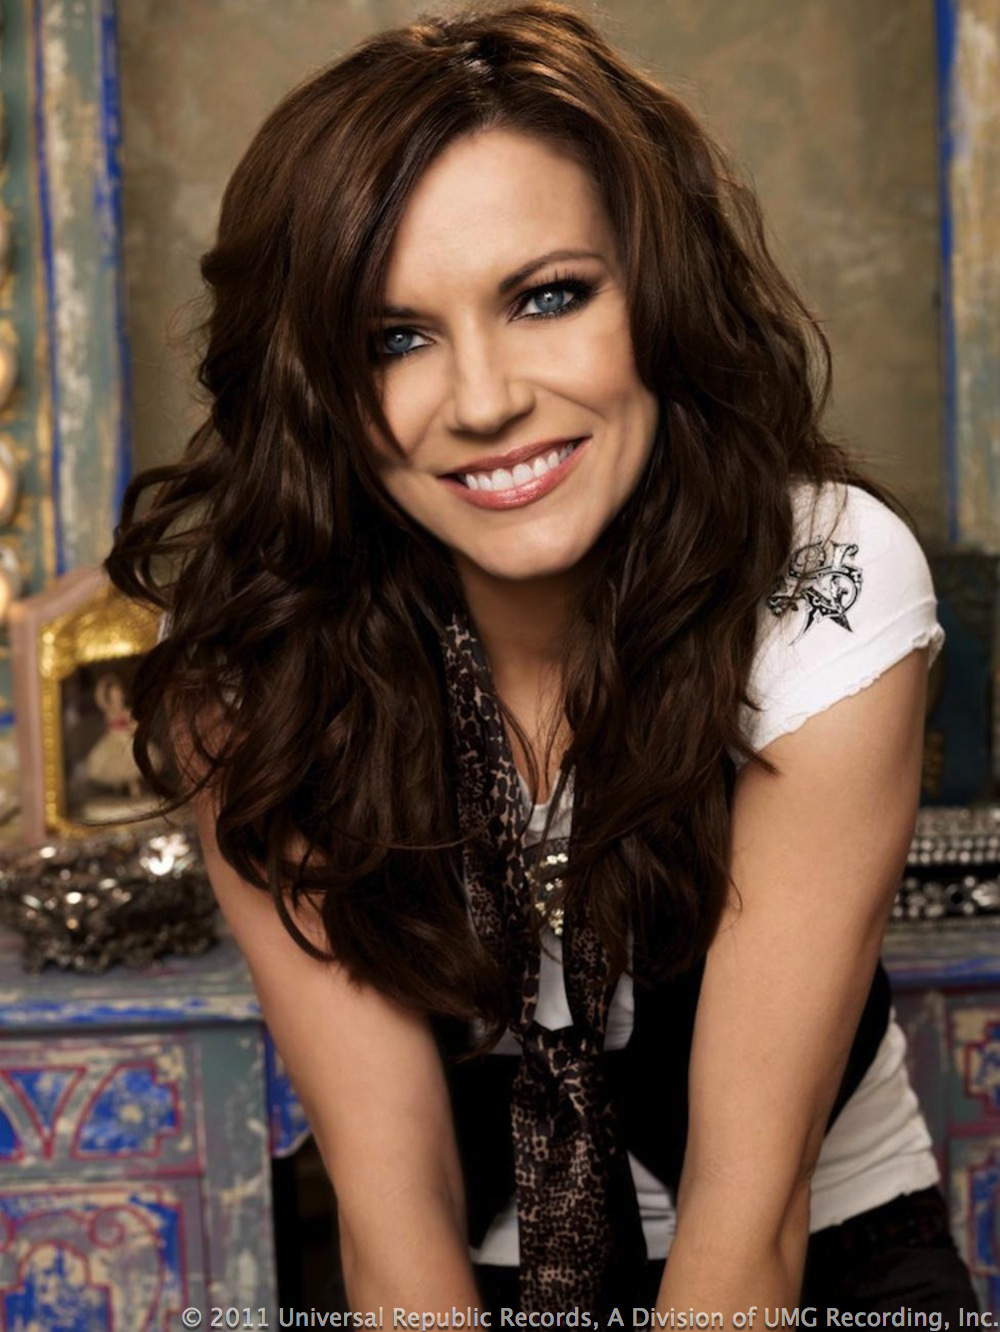 Martina McBride earned a  million dollar salary - leaving the net worth at 12 million in 2018